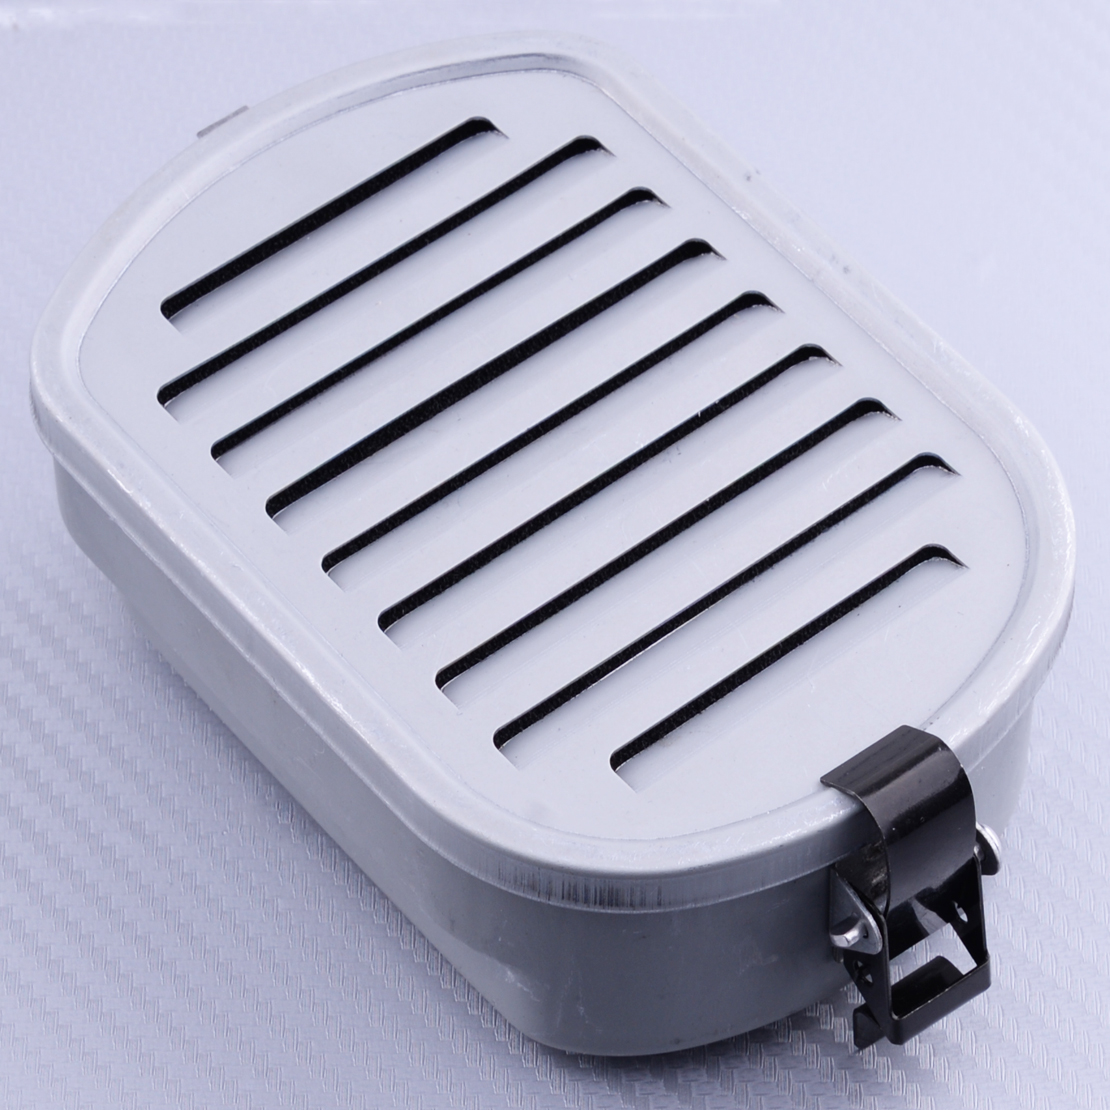 LETAOSK New Air Filter Assembly with Filter Element fit for Robin EY15 EY20 Generator Engine